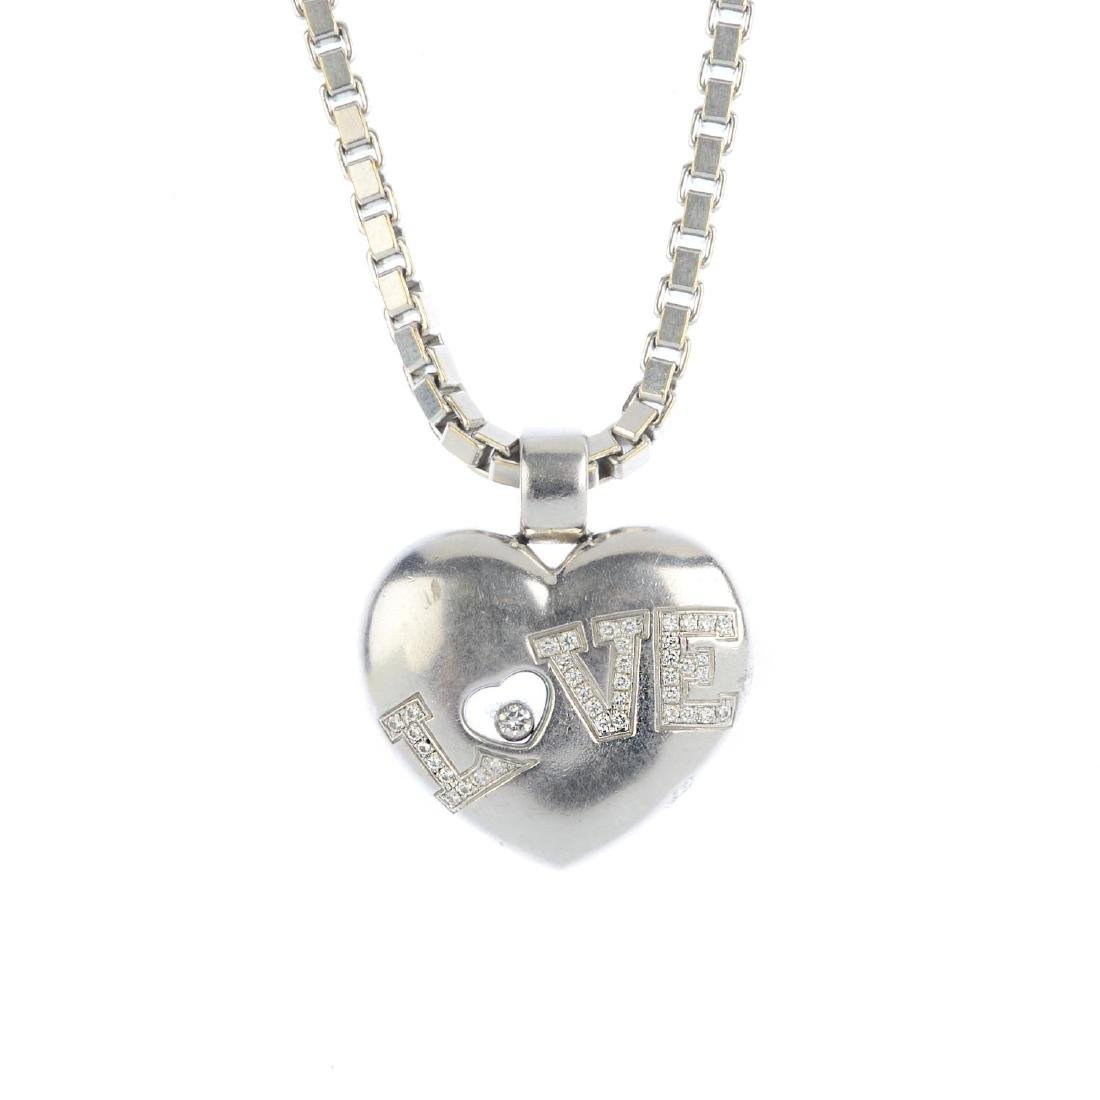 CHOPARD - a 'Happy Diamonds' 'Love' heart pendant. With